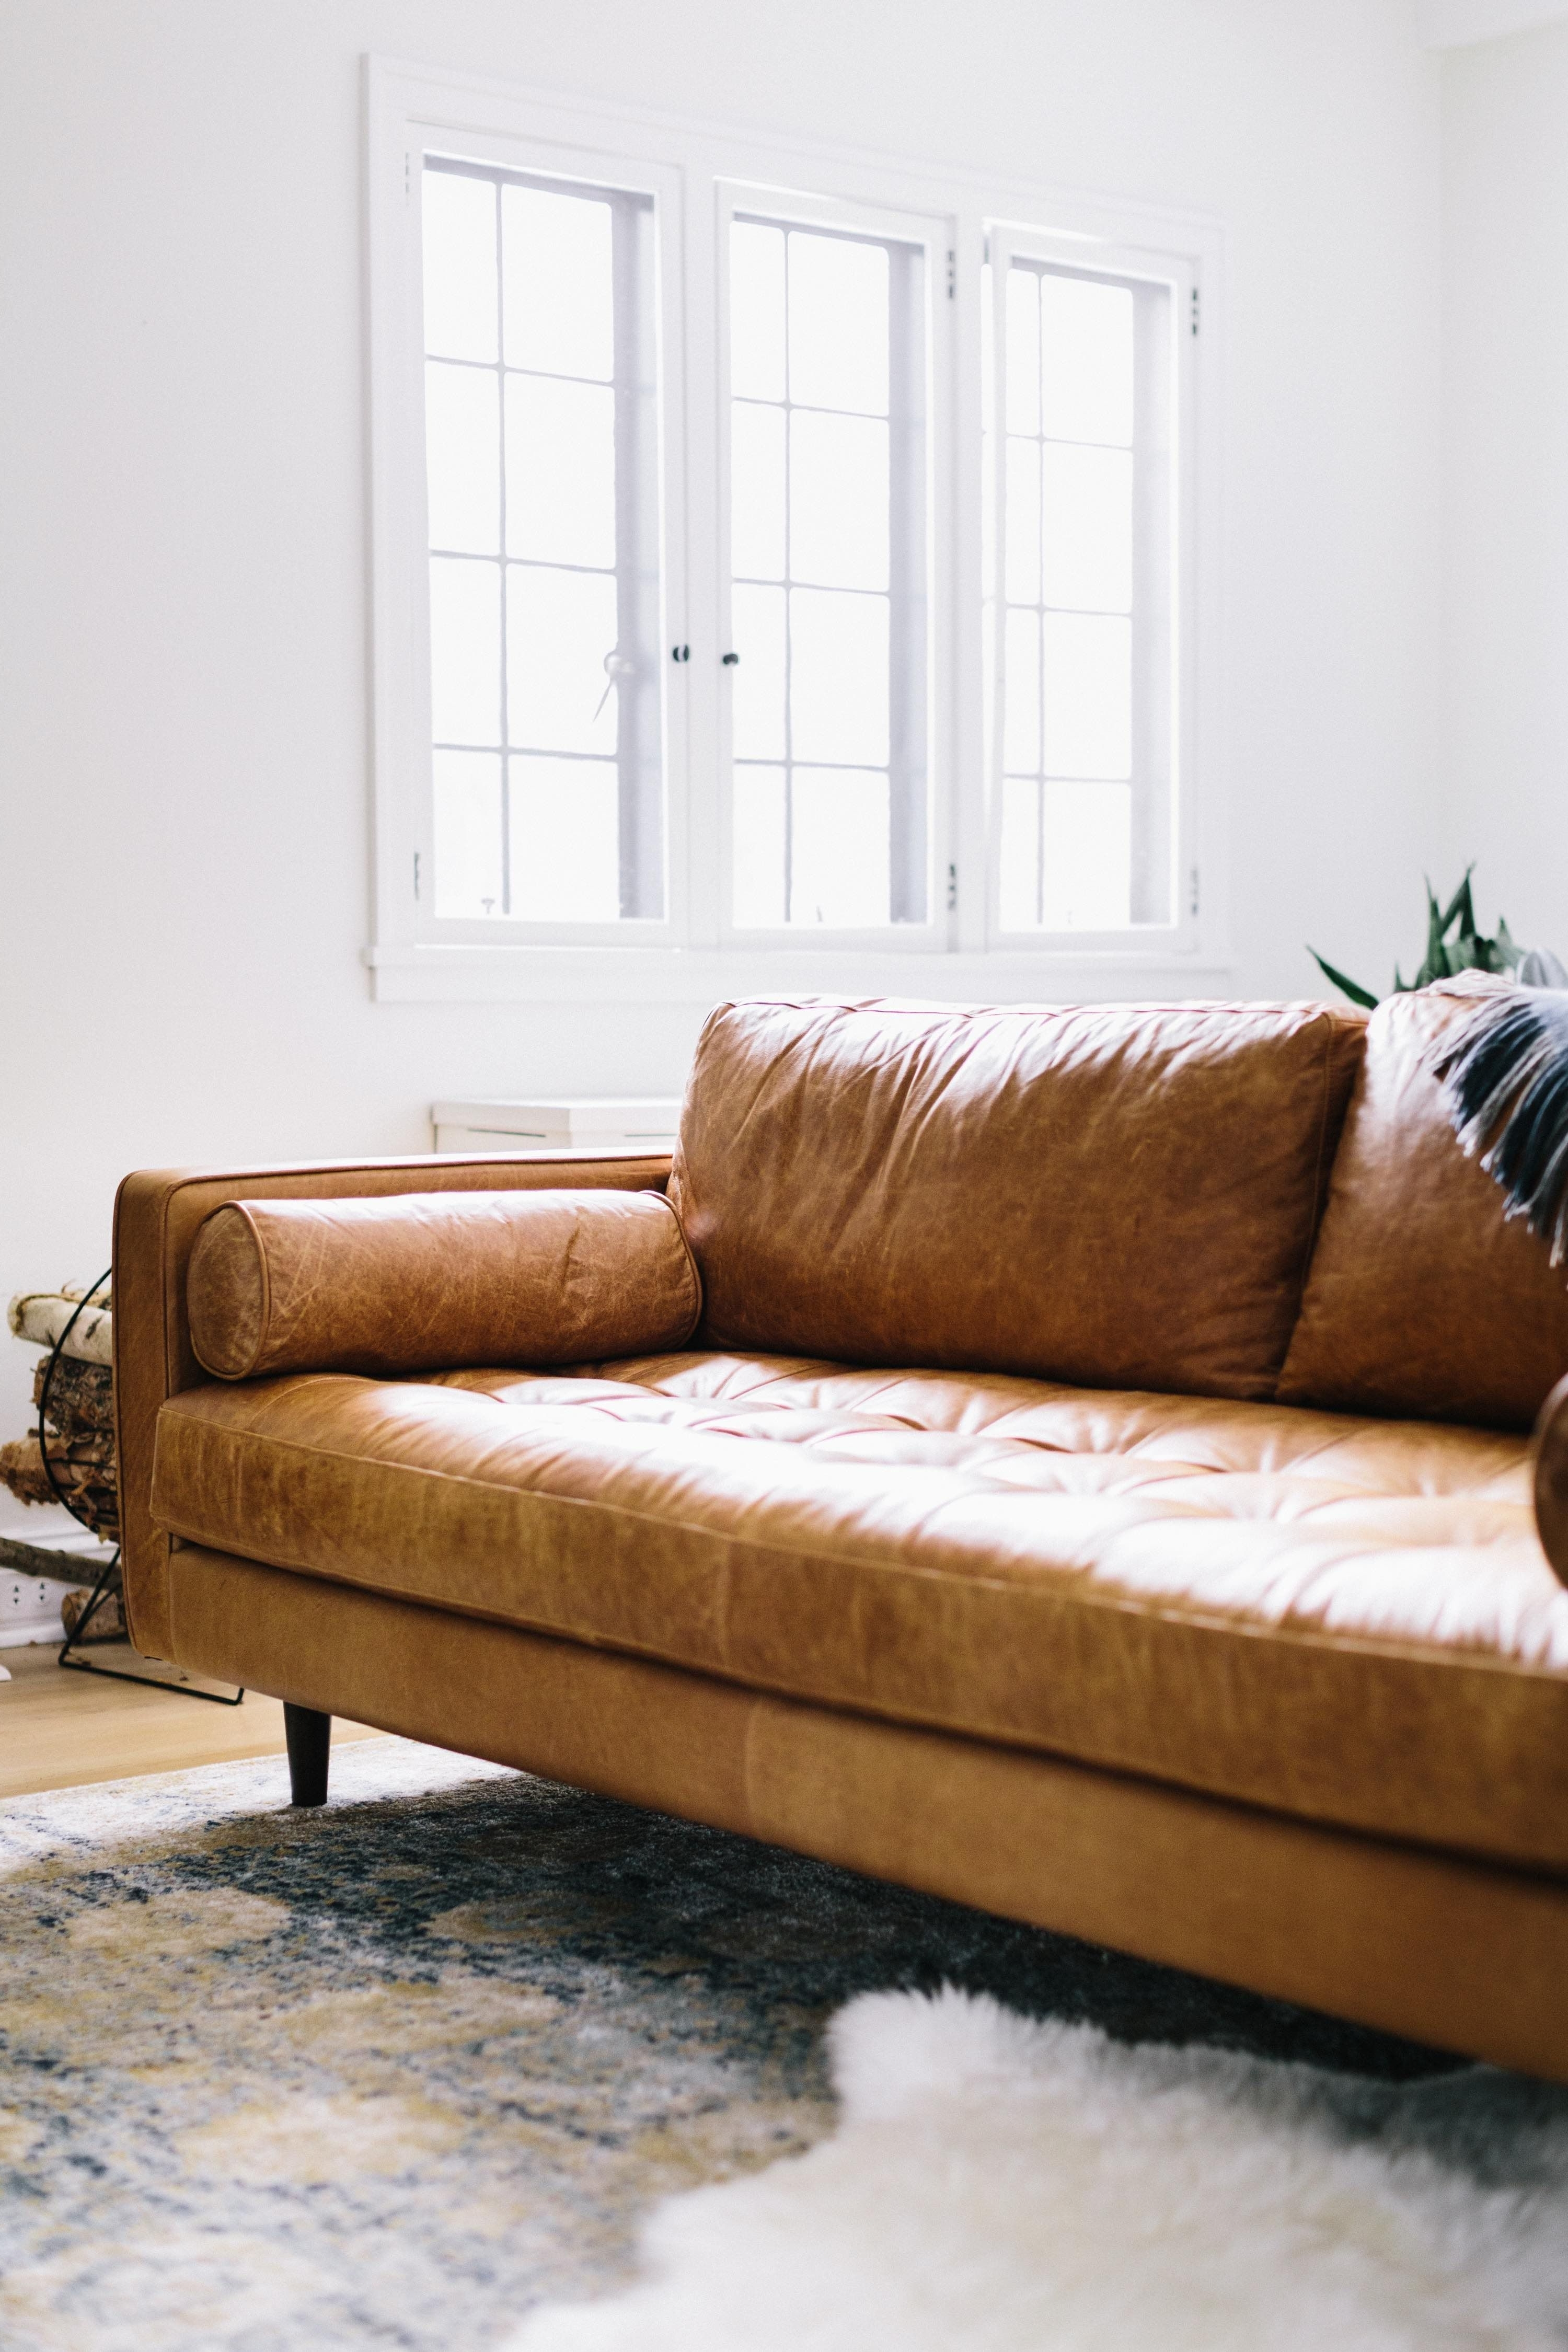 Couch Goals (View 6 of 15)